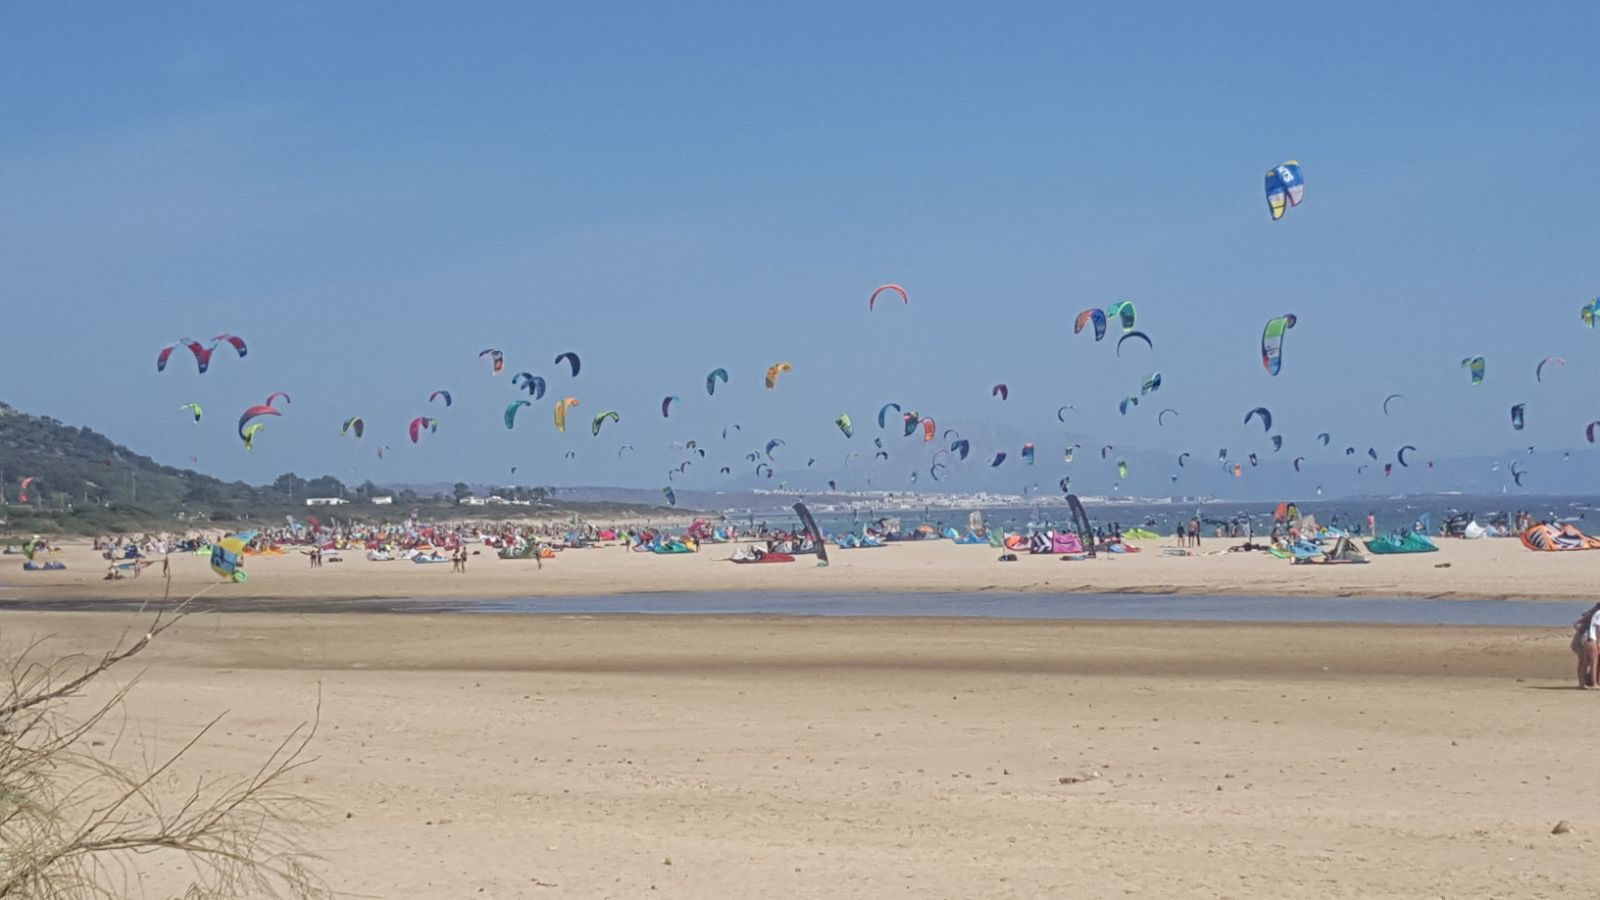 Lost Elementos discount: 15% off kitesurfing lessons in Tarifa